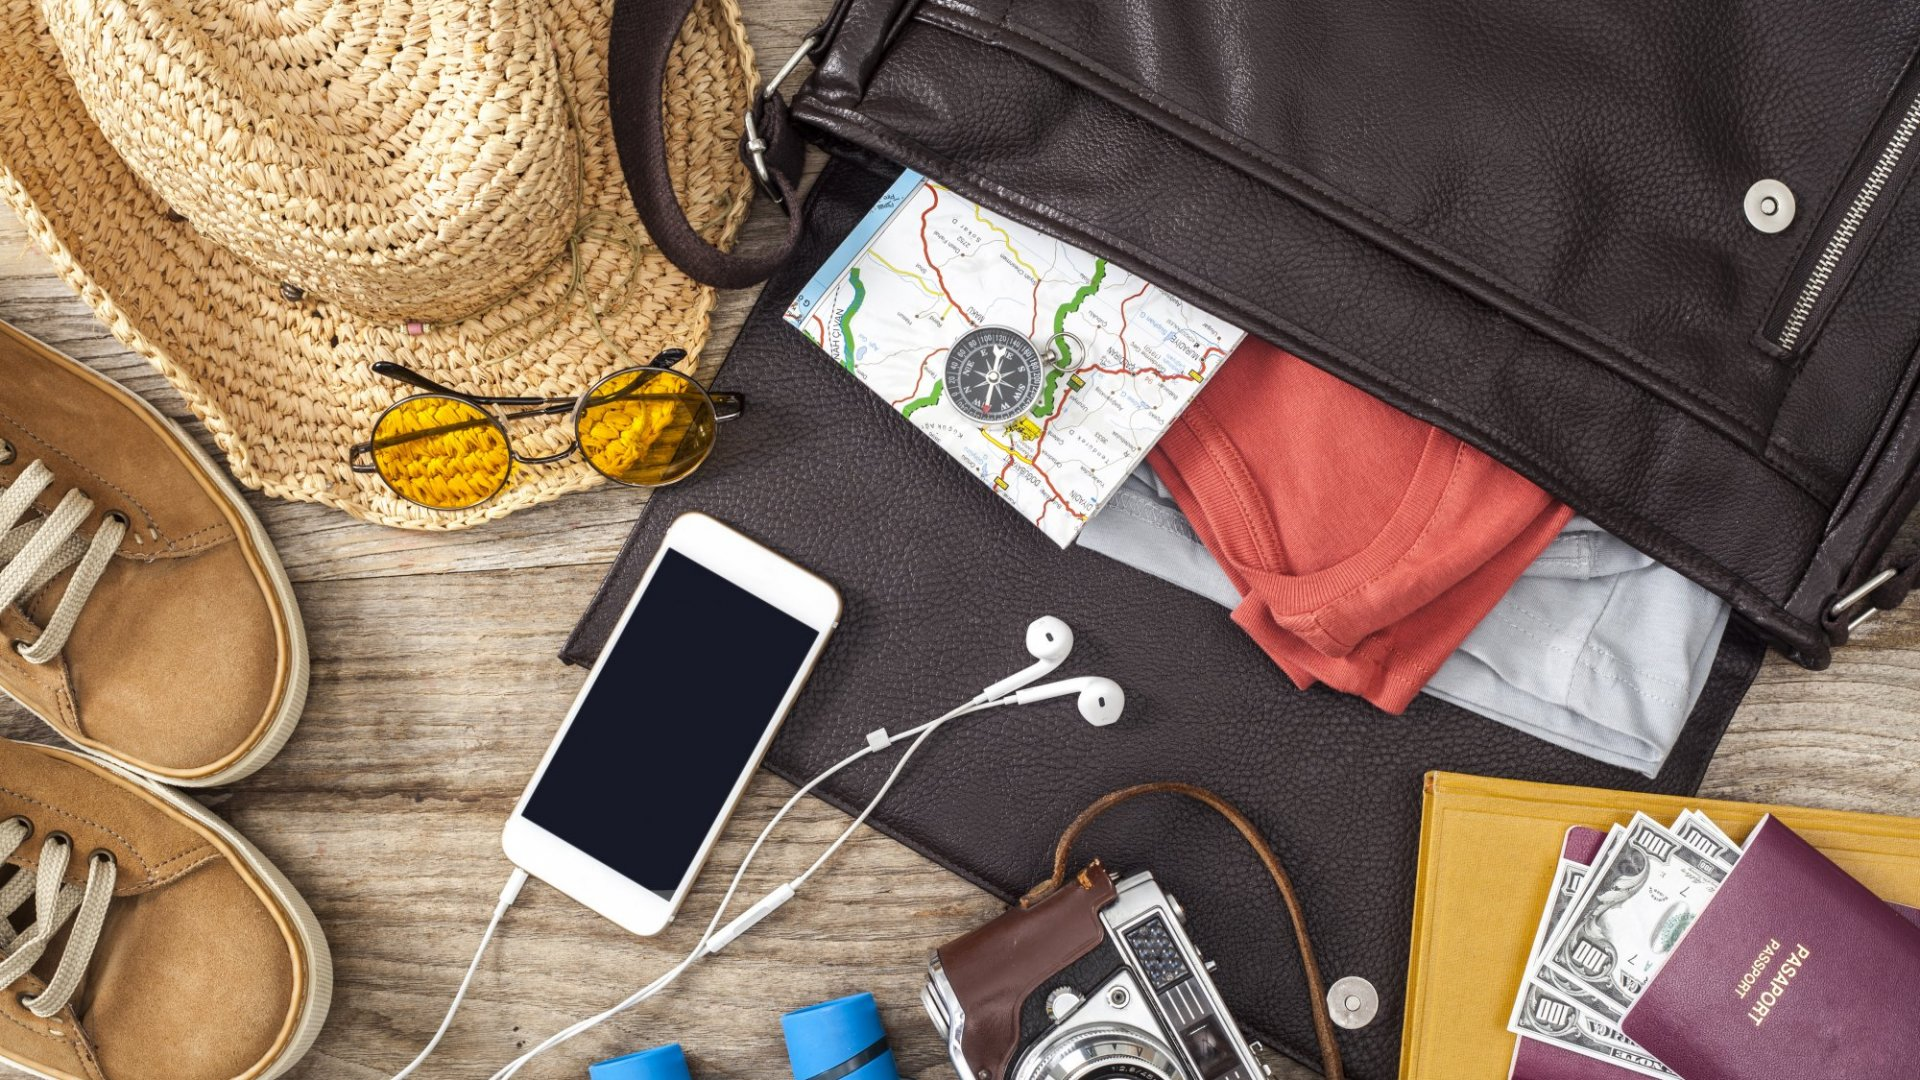 5 Cool Travel Tools for an Awesome Summer Vacation